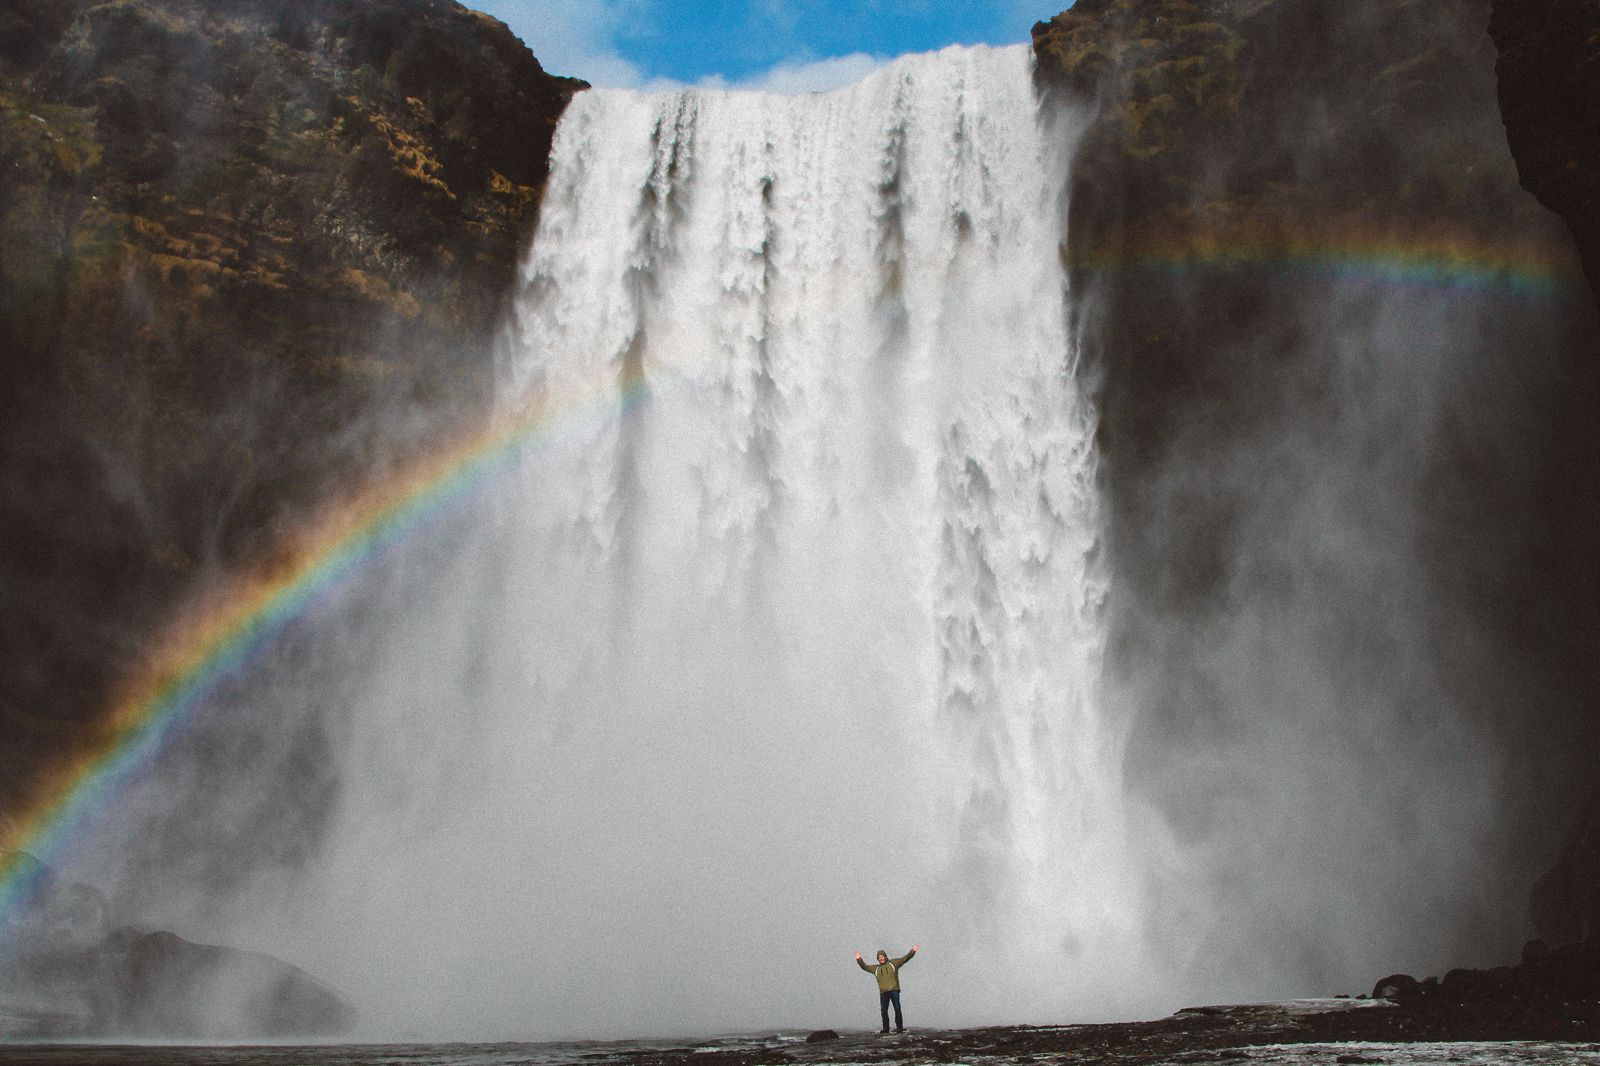 Seljalandsfoss and Skógafoss Waterfalls in Iceland plus Icelandic Lamb and rainbows (43)